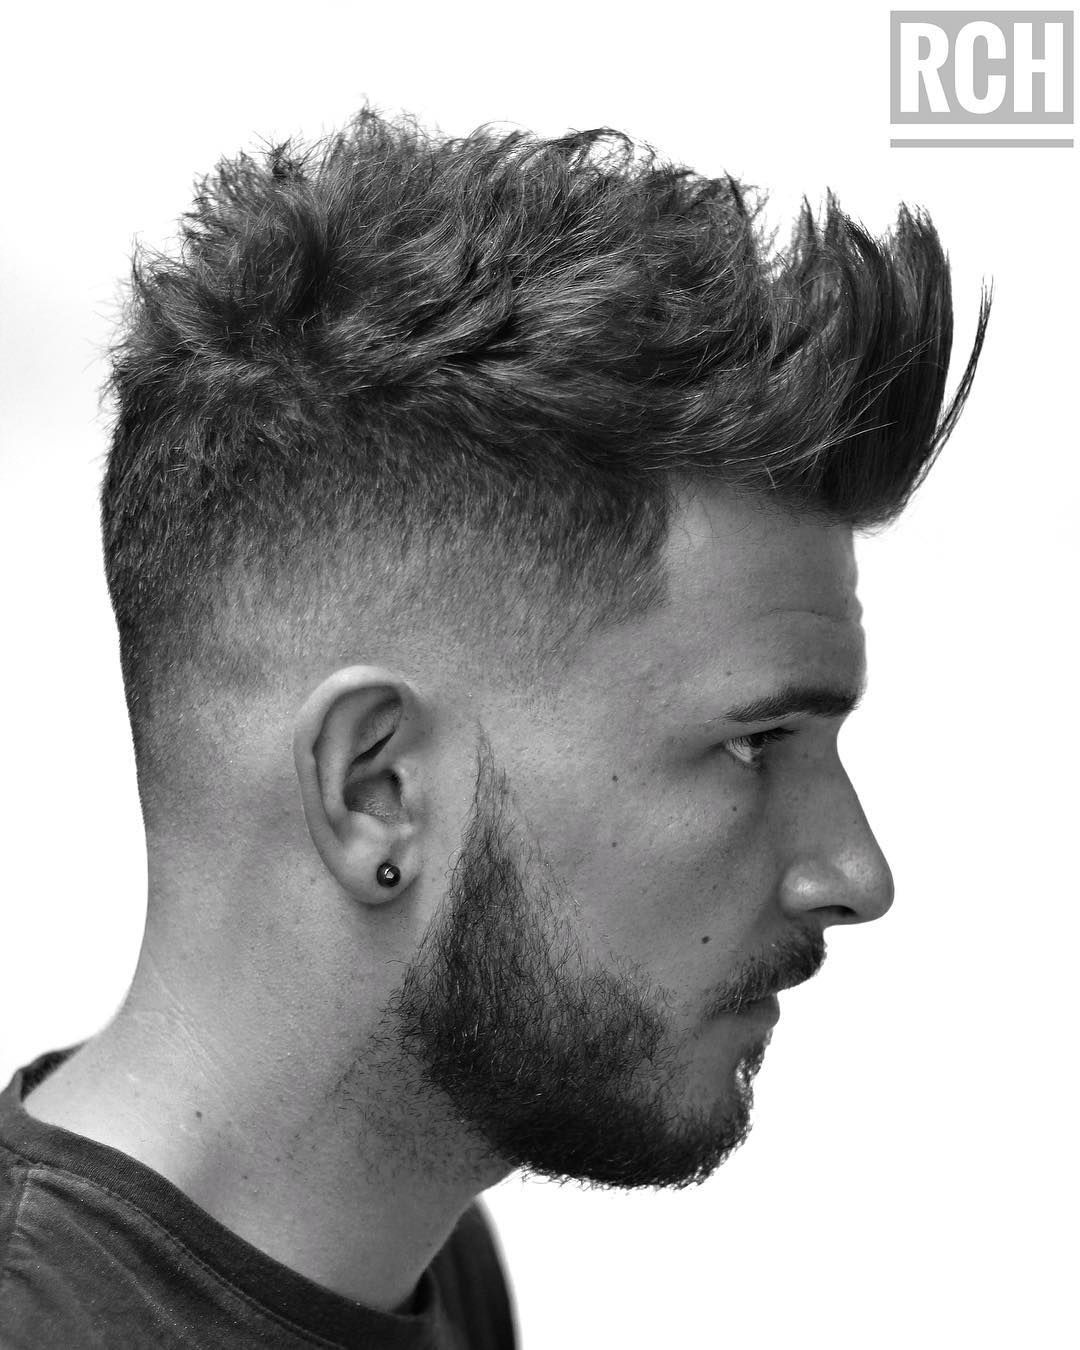 New Hairstyles Best 100 New Men's Hairstyles For 2018 Top Picks  Pinterest